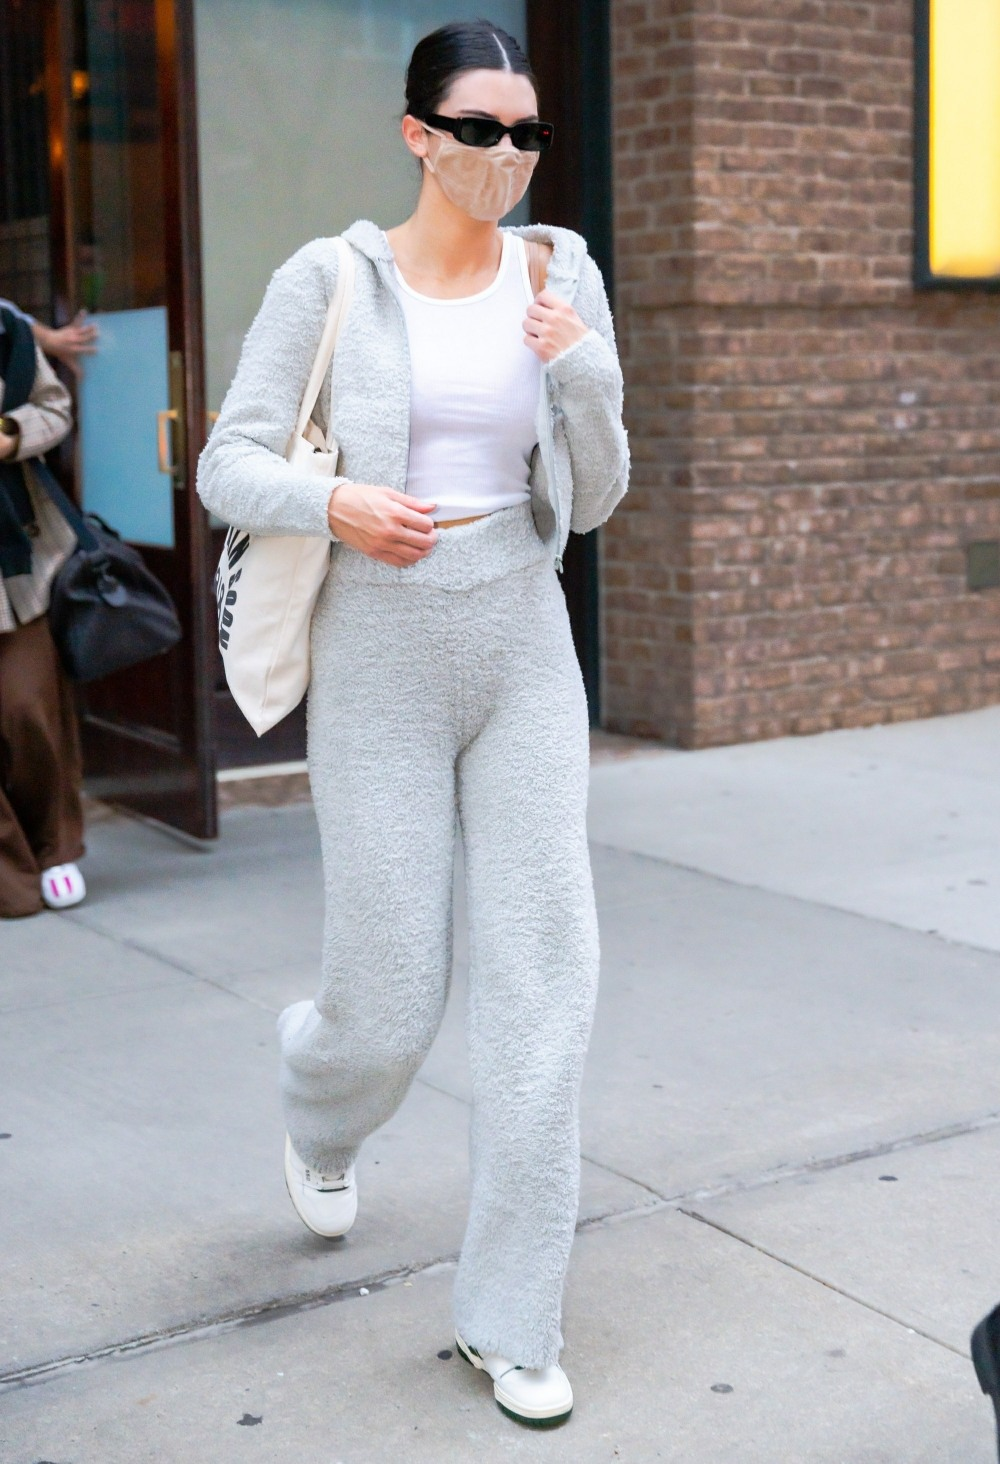 Kendall Jenner wears Alo yoga after she checks out of her hotel in New York City